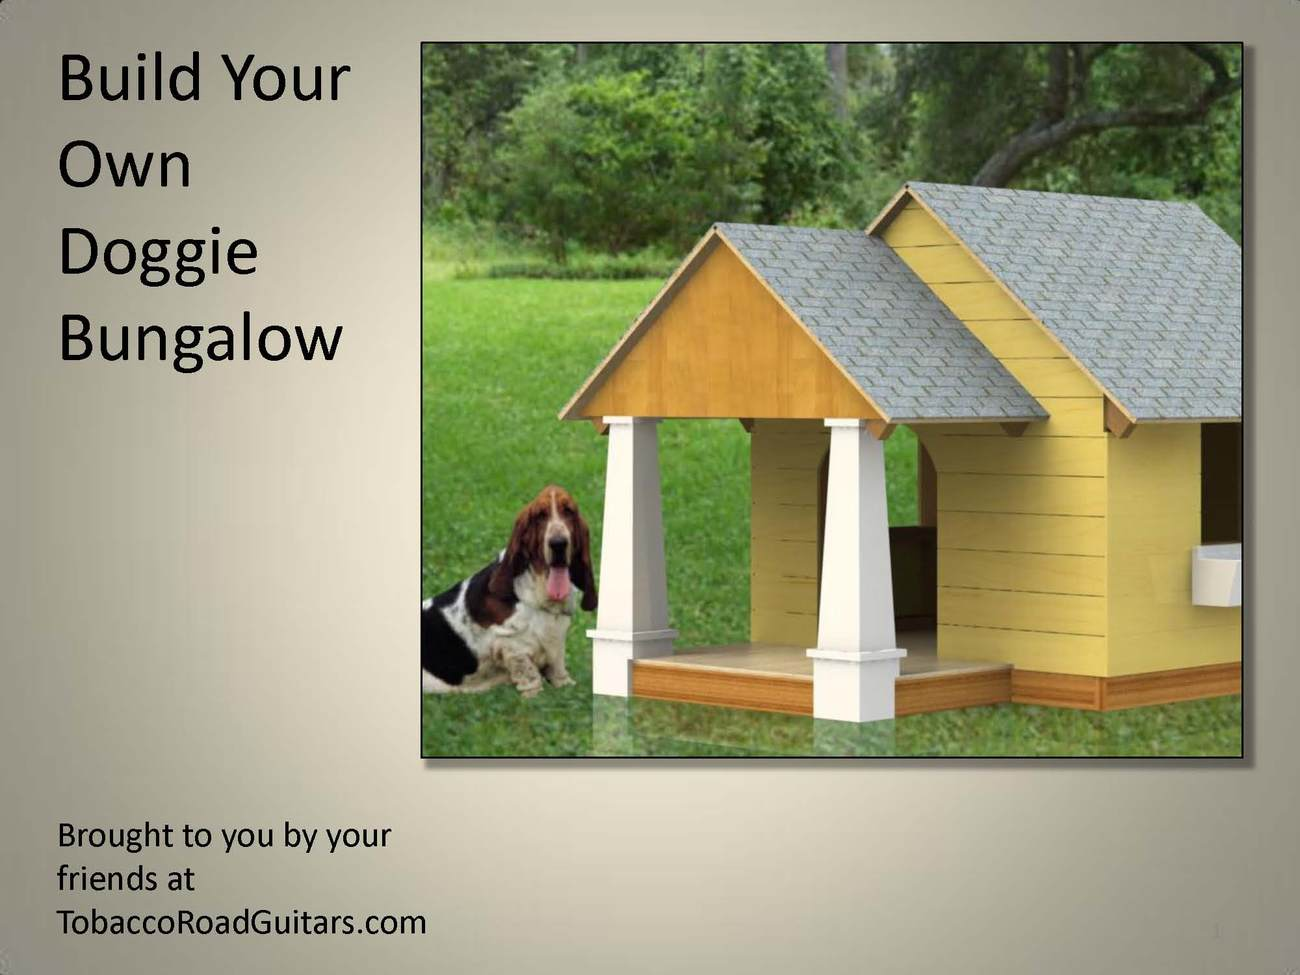 Dog house bungalow plans and instructions dog houses for Building your own home in colorado